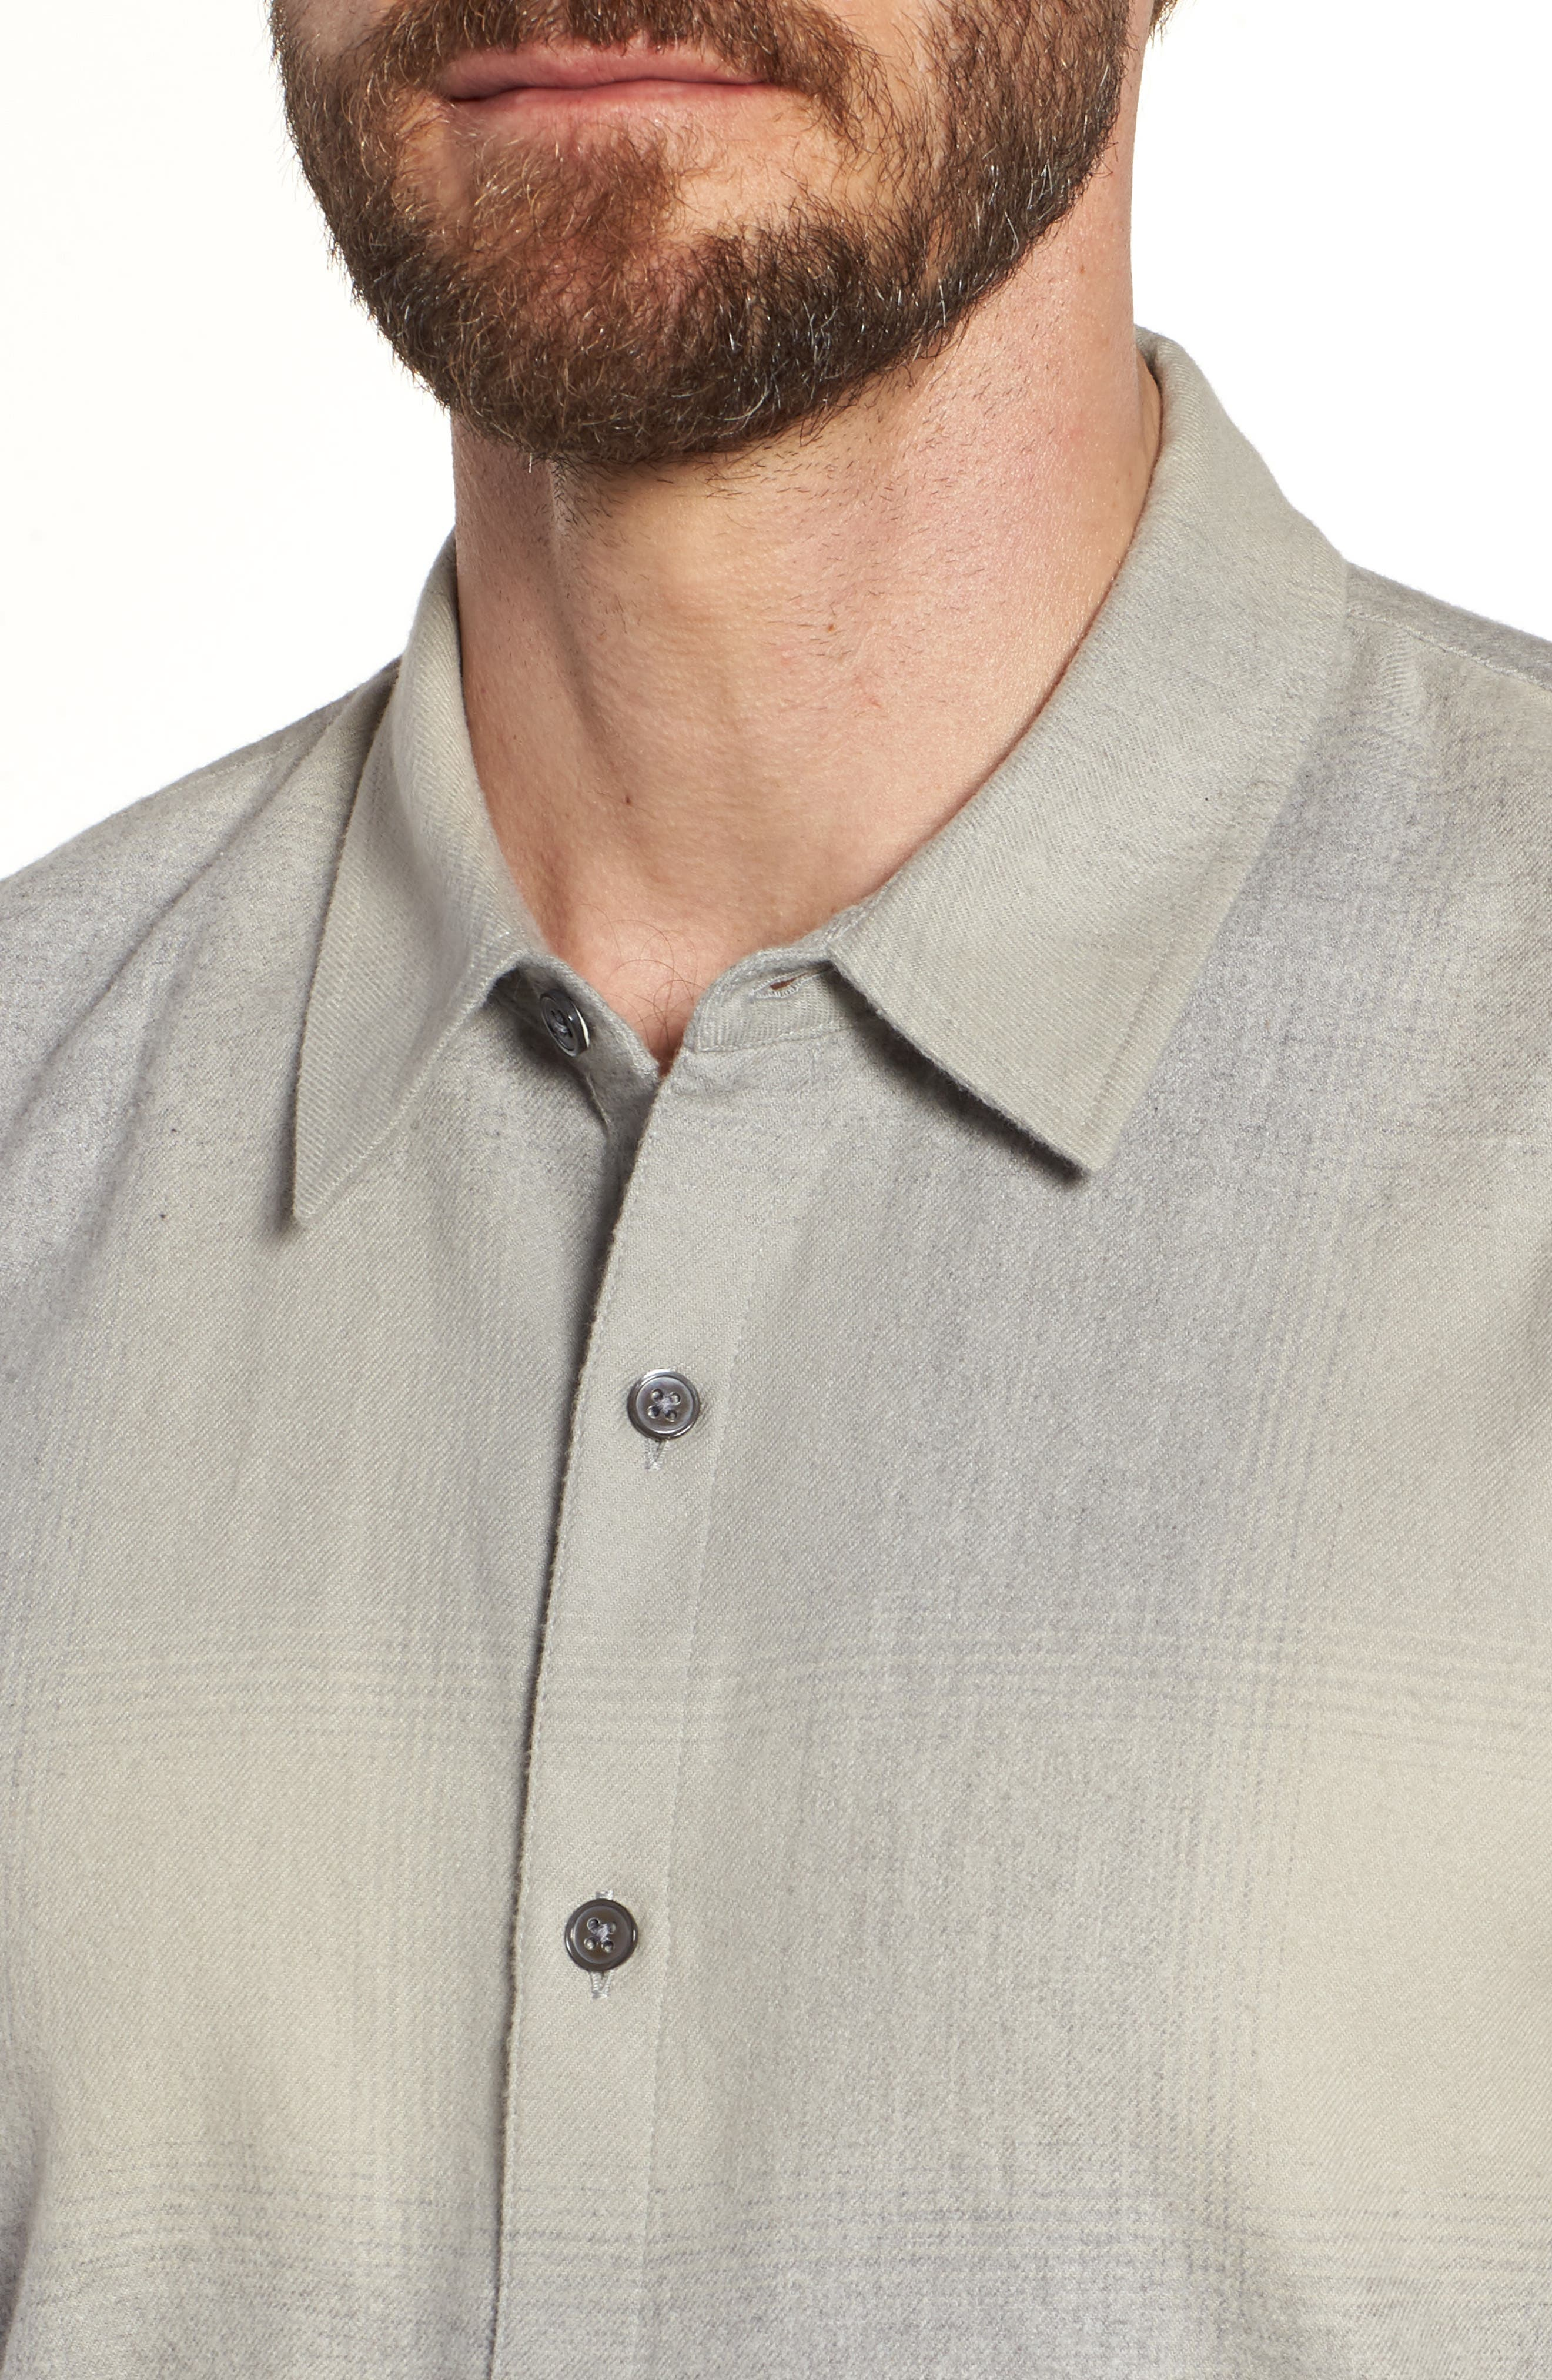 Ghost Regular Fit Plaid Sport Shirt,                             Alternate thumbnail 4, color,                             086